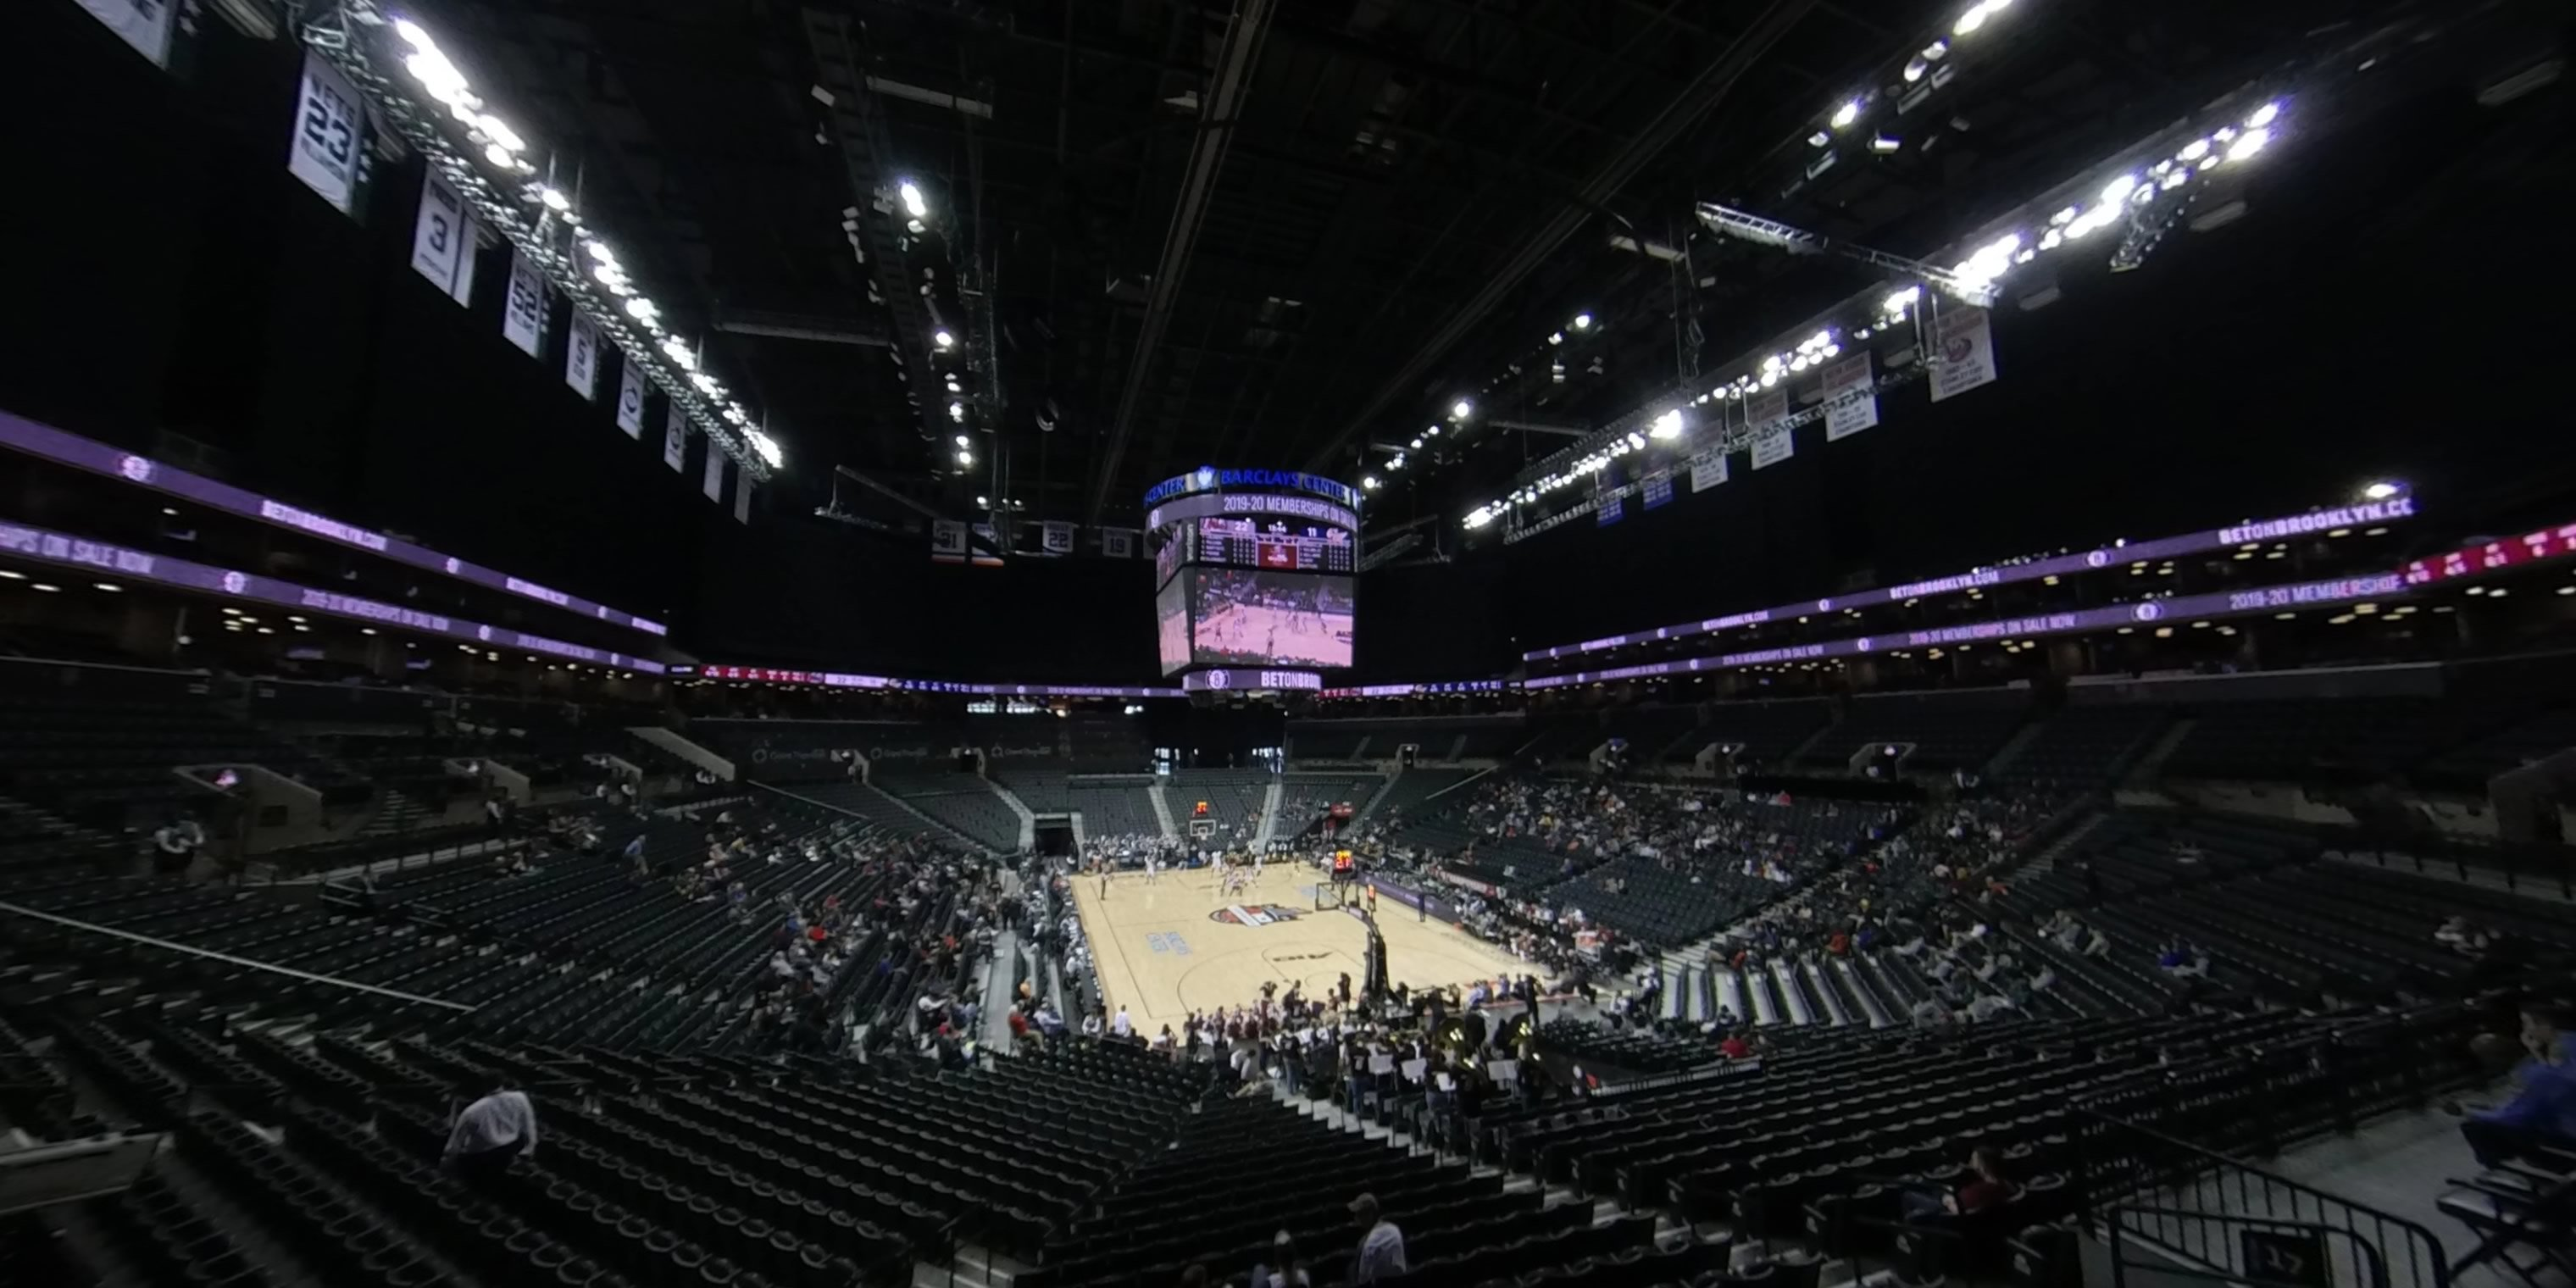 barclays center - photo #9